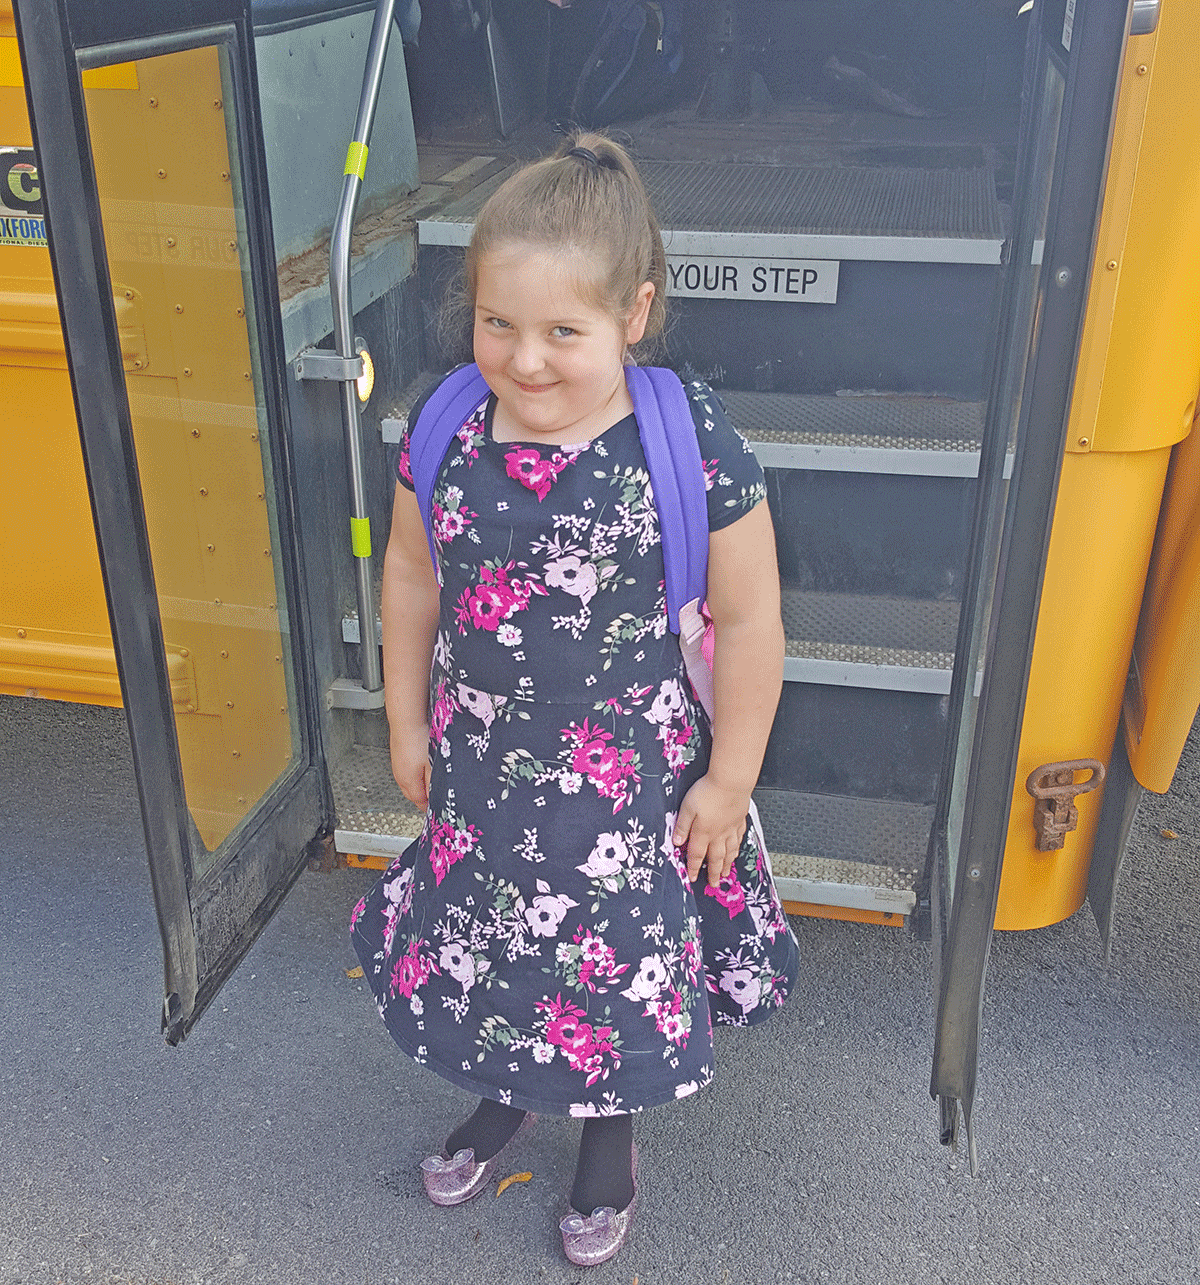 Kenleigh Northrop, 5, gets ready to board the bus on her first day of first grade at Gouveneur Elementary School. Photo submitted by Samantha Northrop.